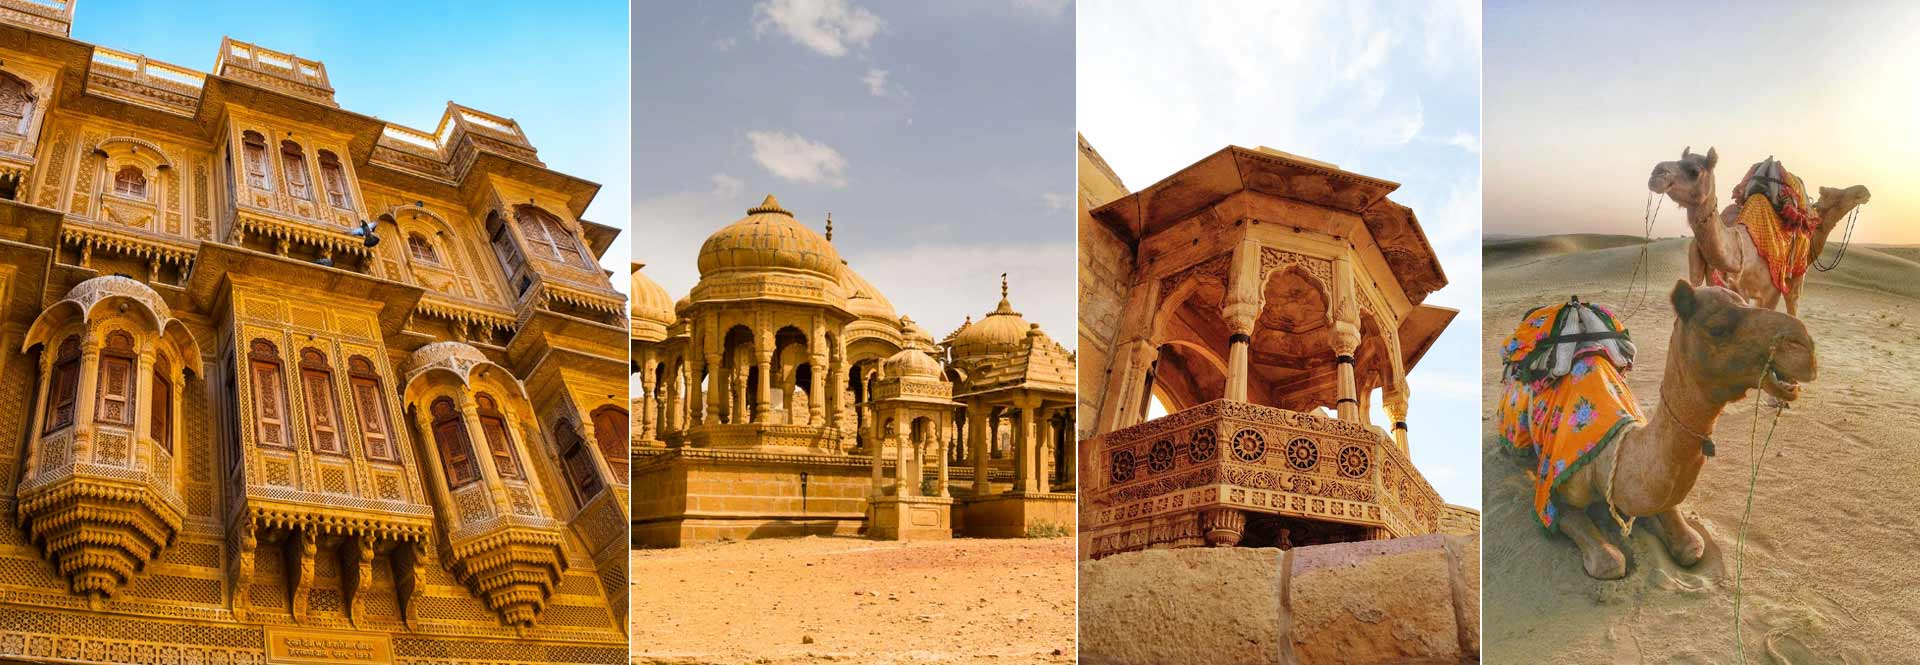 Jaisalmer Tour Package from Chennai